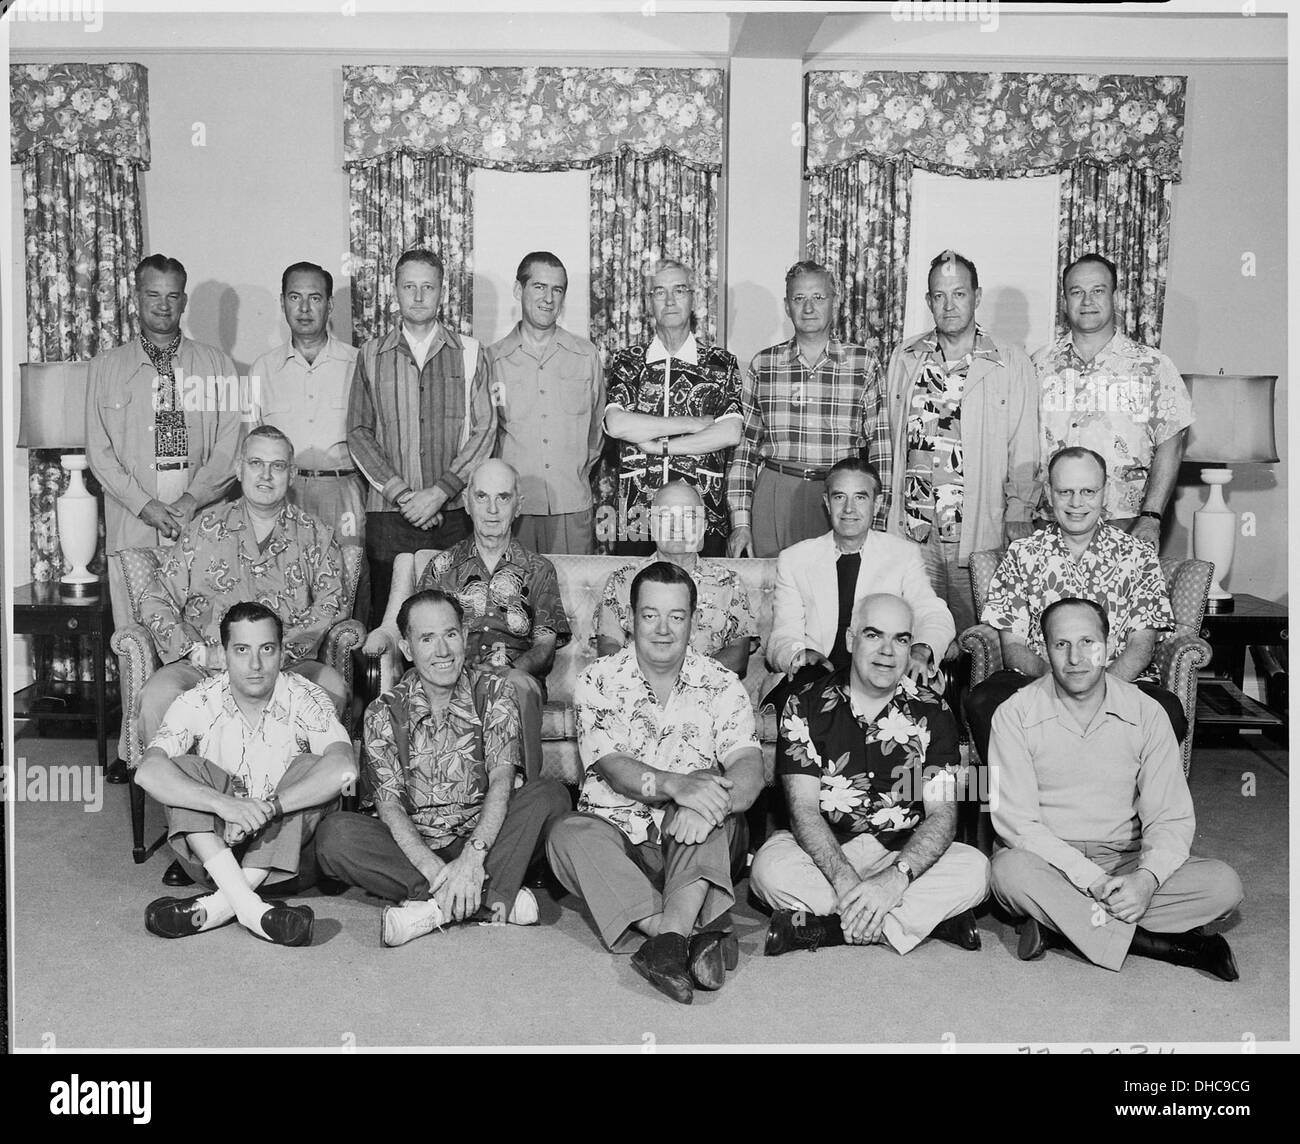 e8b49dbb7 Photograph of President Truman with members of his official party (many  attired in Hawaiian shirts), on vacation in... 200549